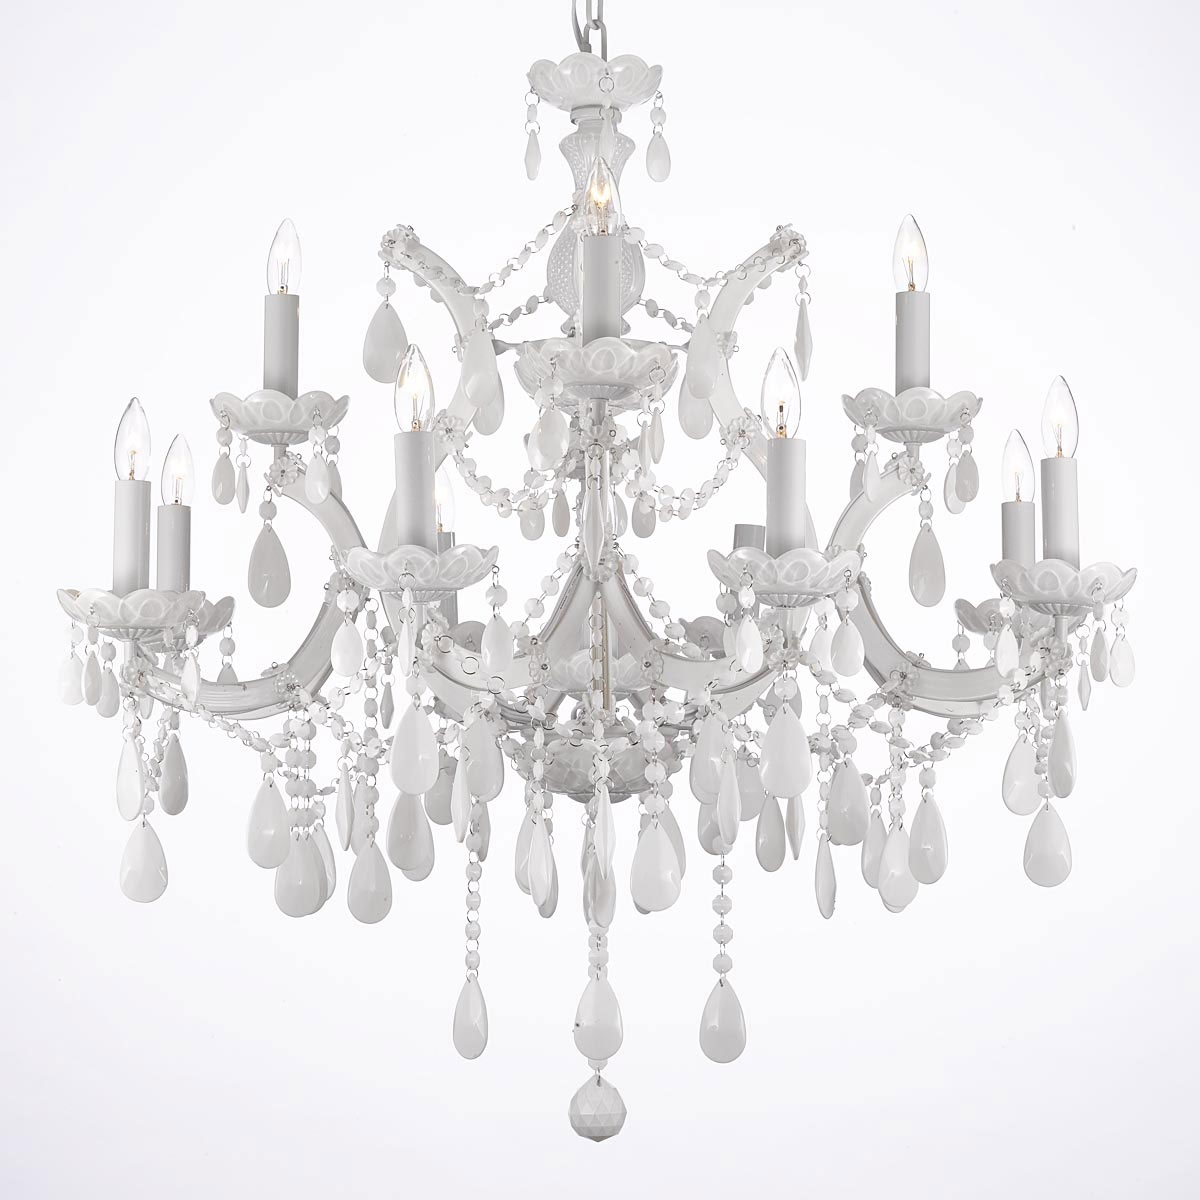 Chandelier Chandeliers Crystal Chandelier Crystal Chandeliers In White And Crystal Chandeliers (Image 9 of 25)